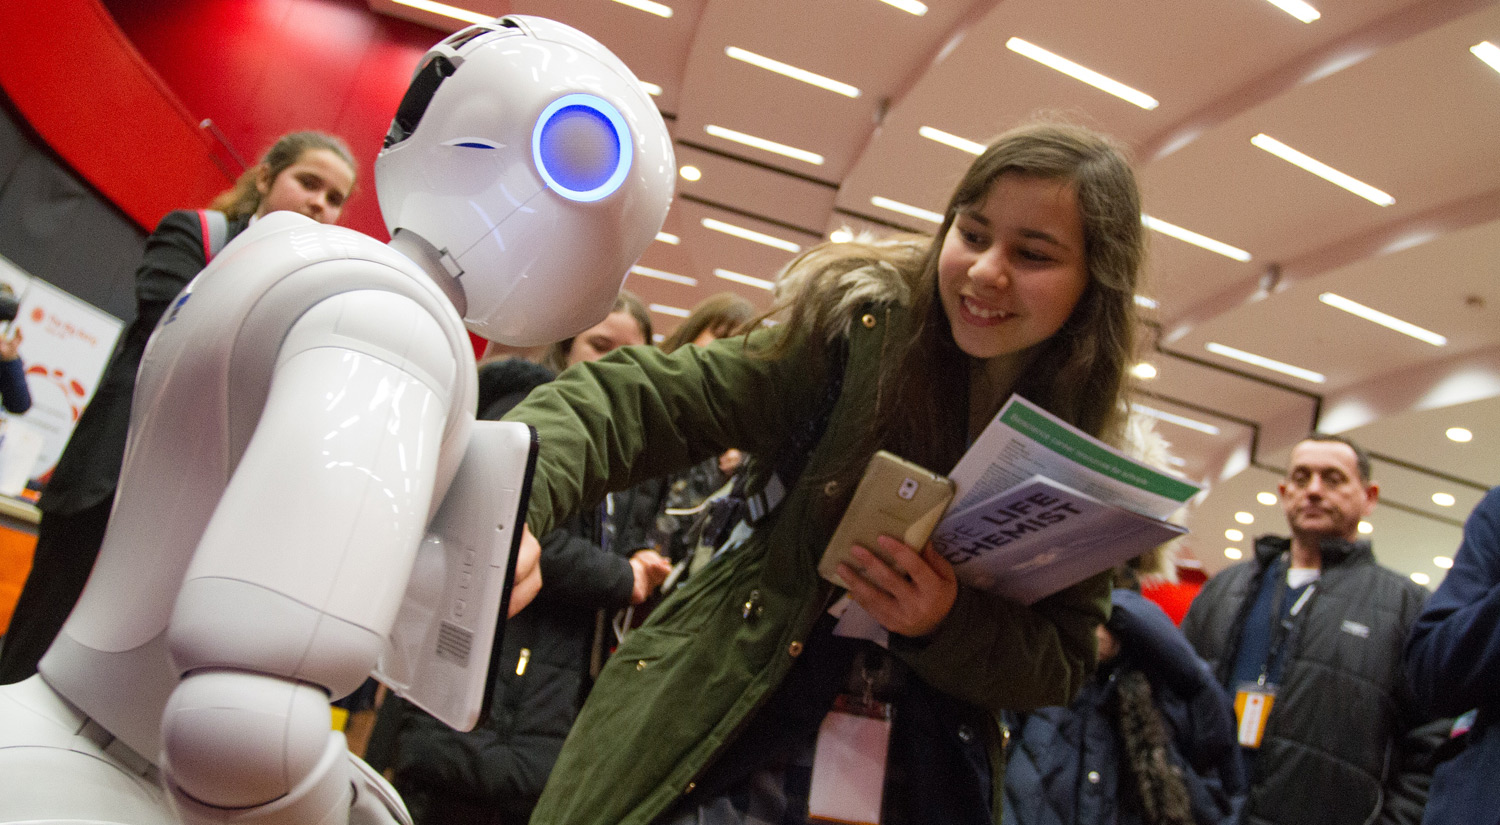 He can dance, he can play, and he can certainly entertain hundreds of Big Bang visitors – it's Pepper the robot!